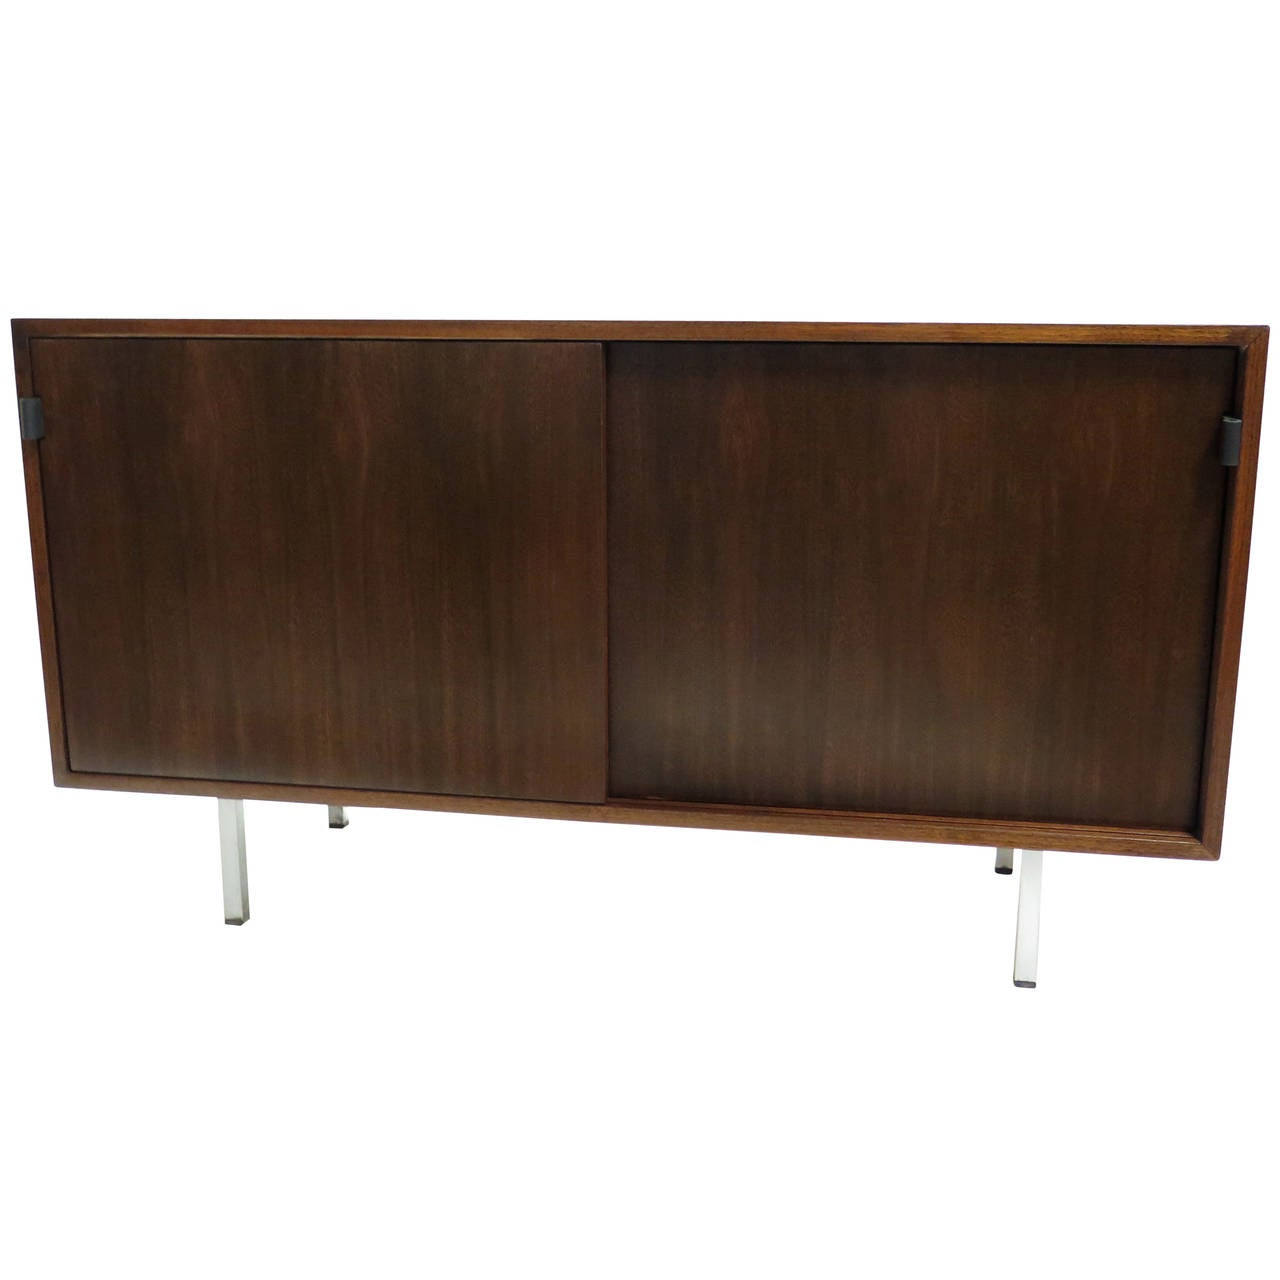 1960 knoll walnut cabinet with two sliding doors at 1stdibs for Sliding door cabinet